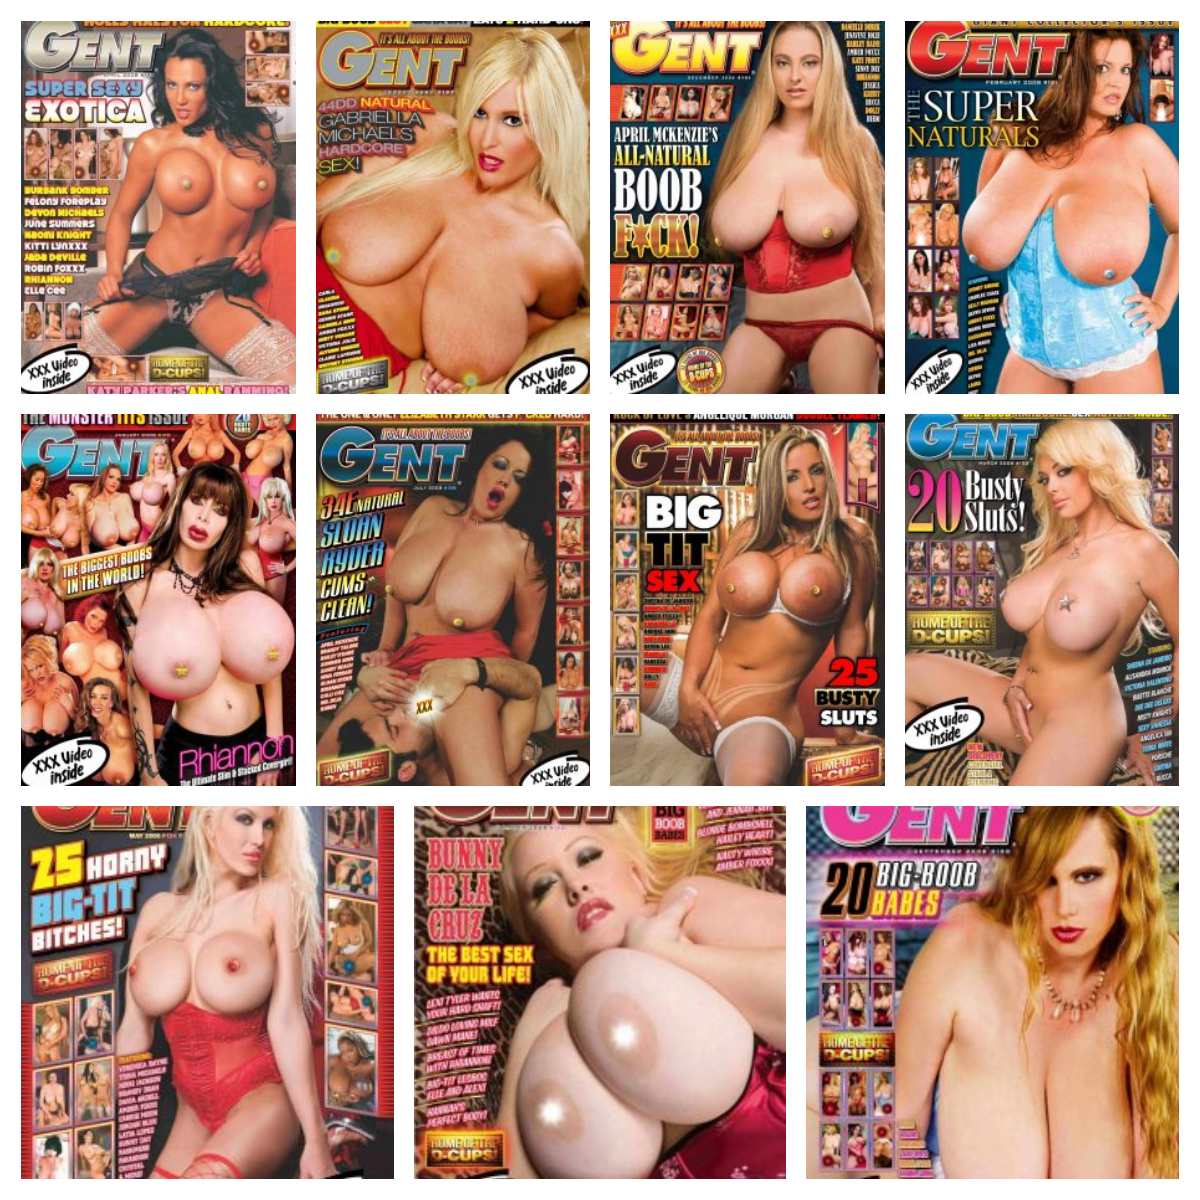 Gent Magazine – 2008 Full Year Issues Collection